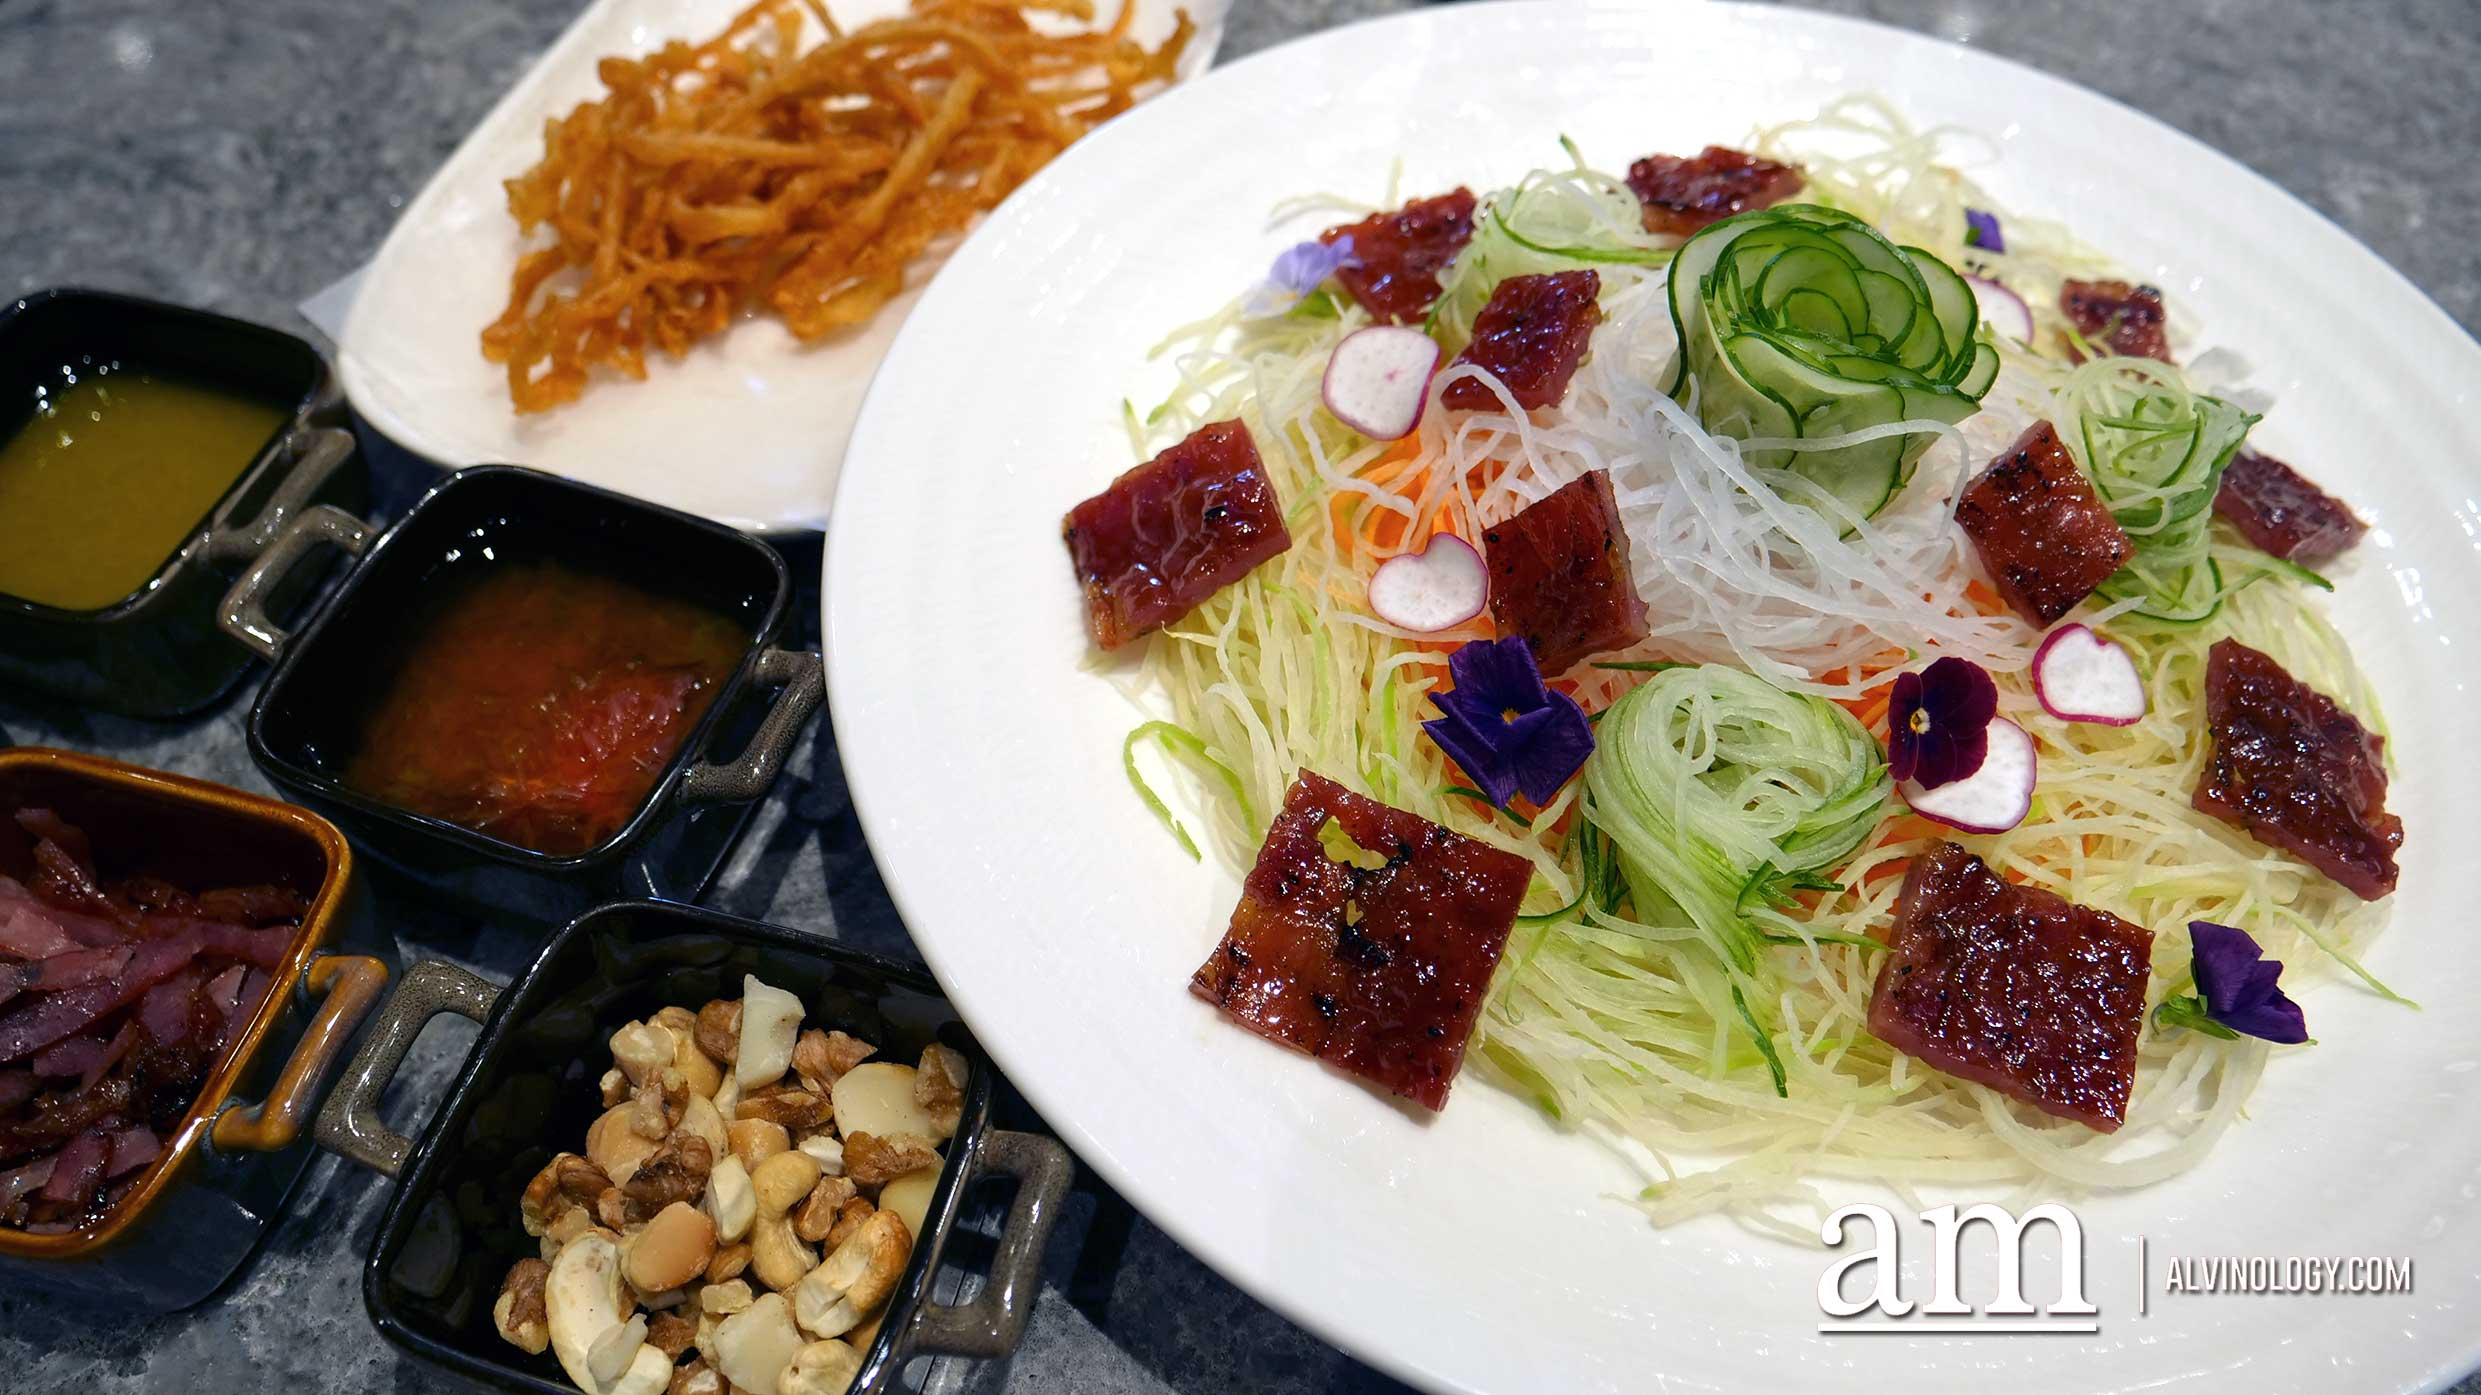 Bakkwa Lohei to usher in the Year of the Pig - Alvinology